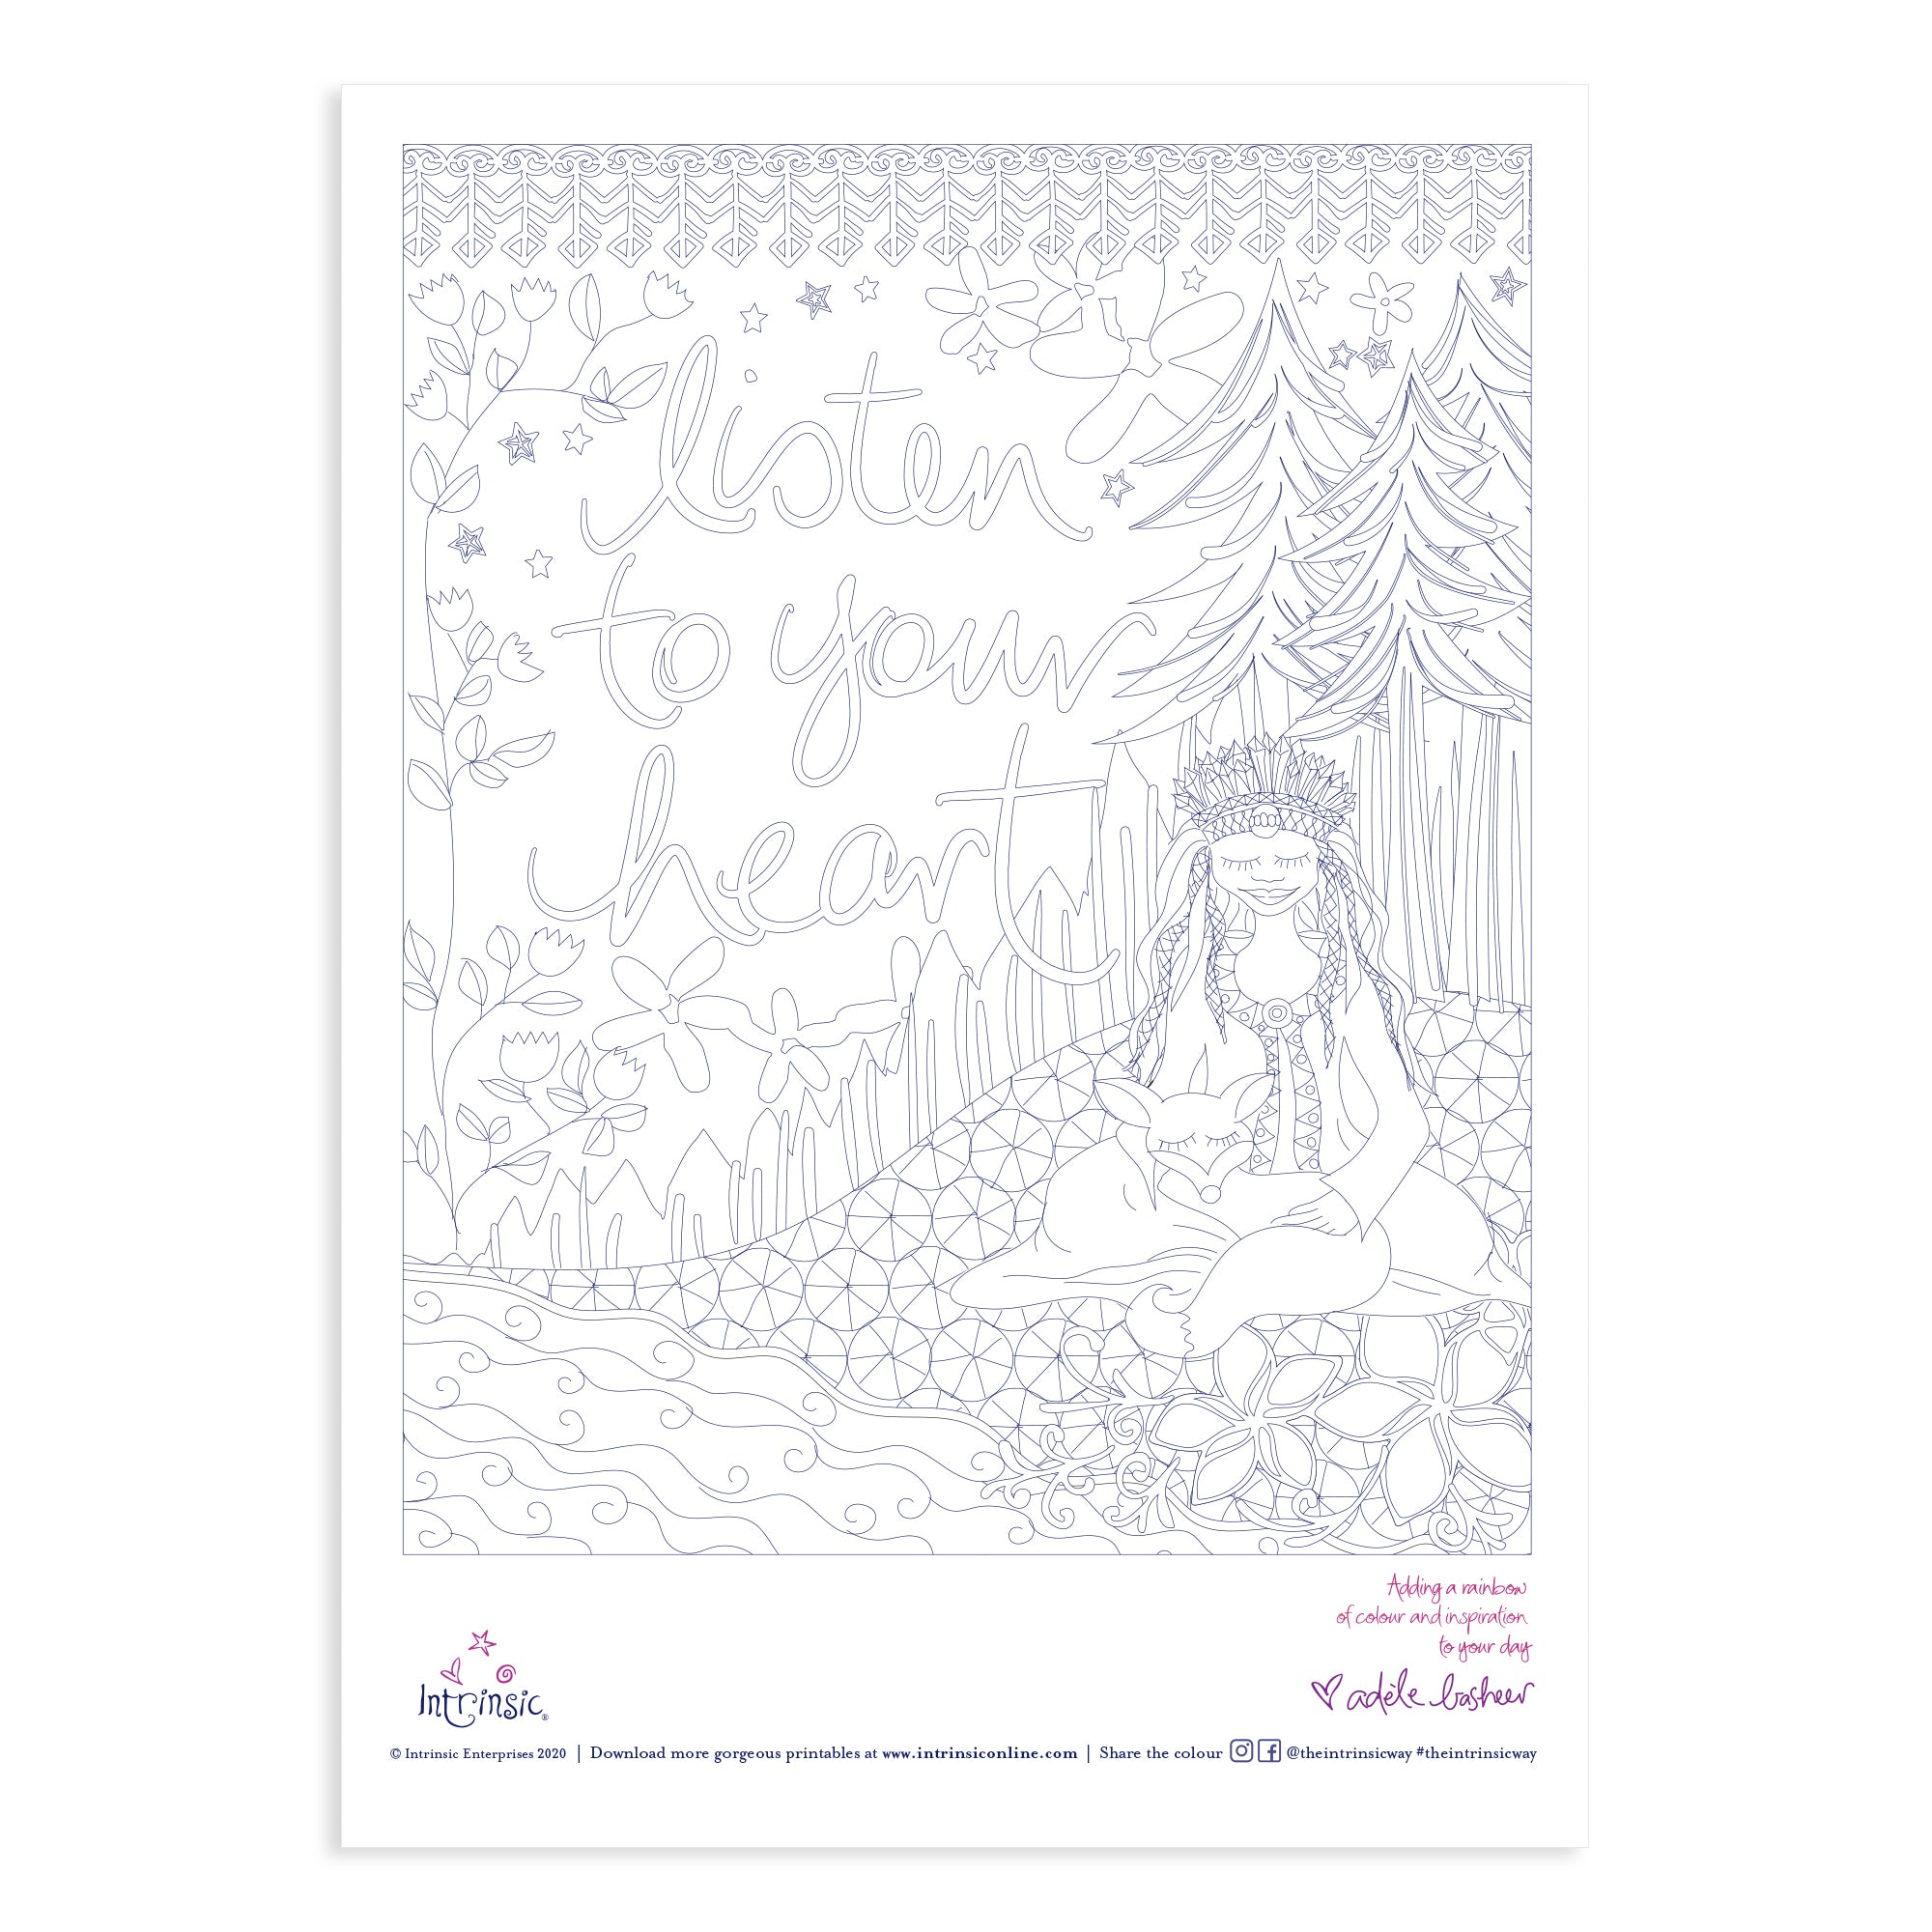 Intrinsic's Follow Your Heart Colouring in Printable #29